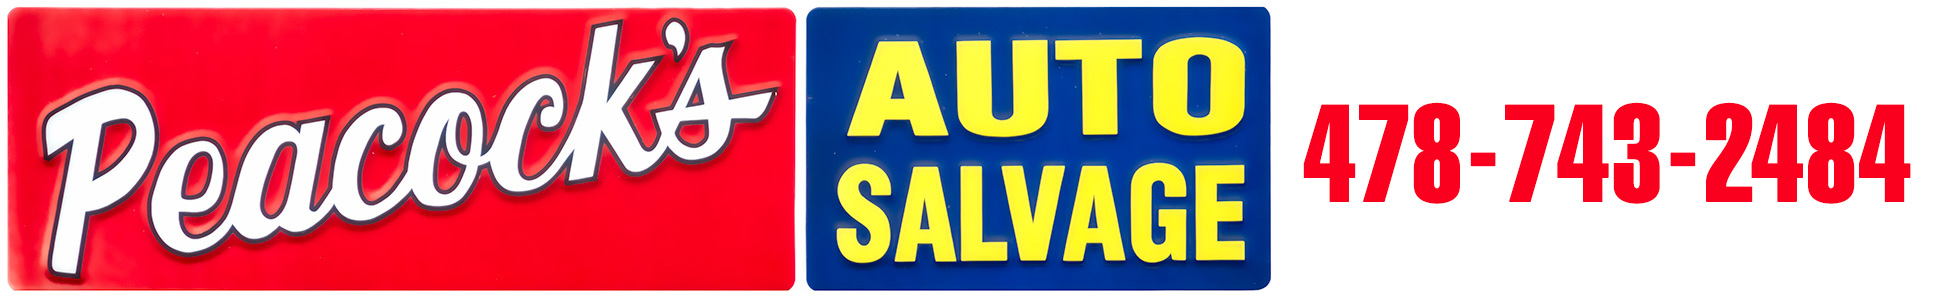 Peacock's Auto Salvage